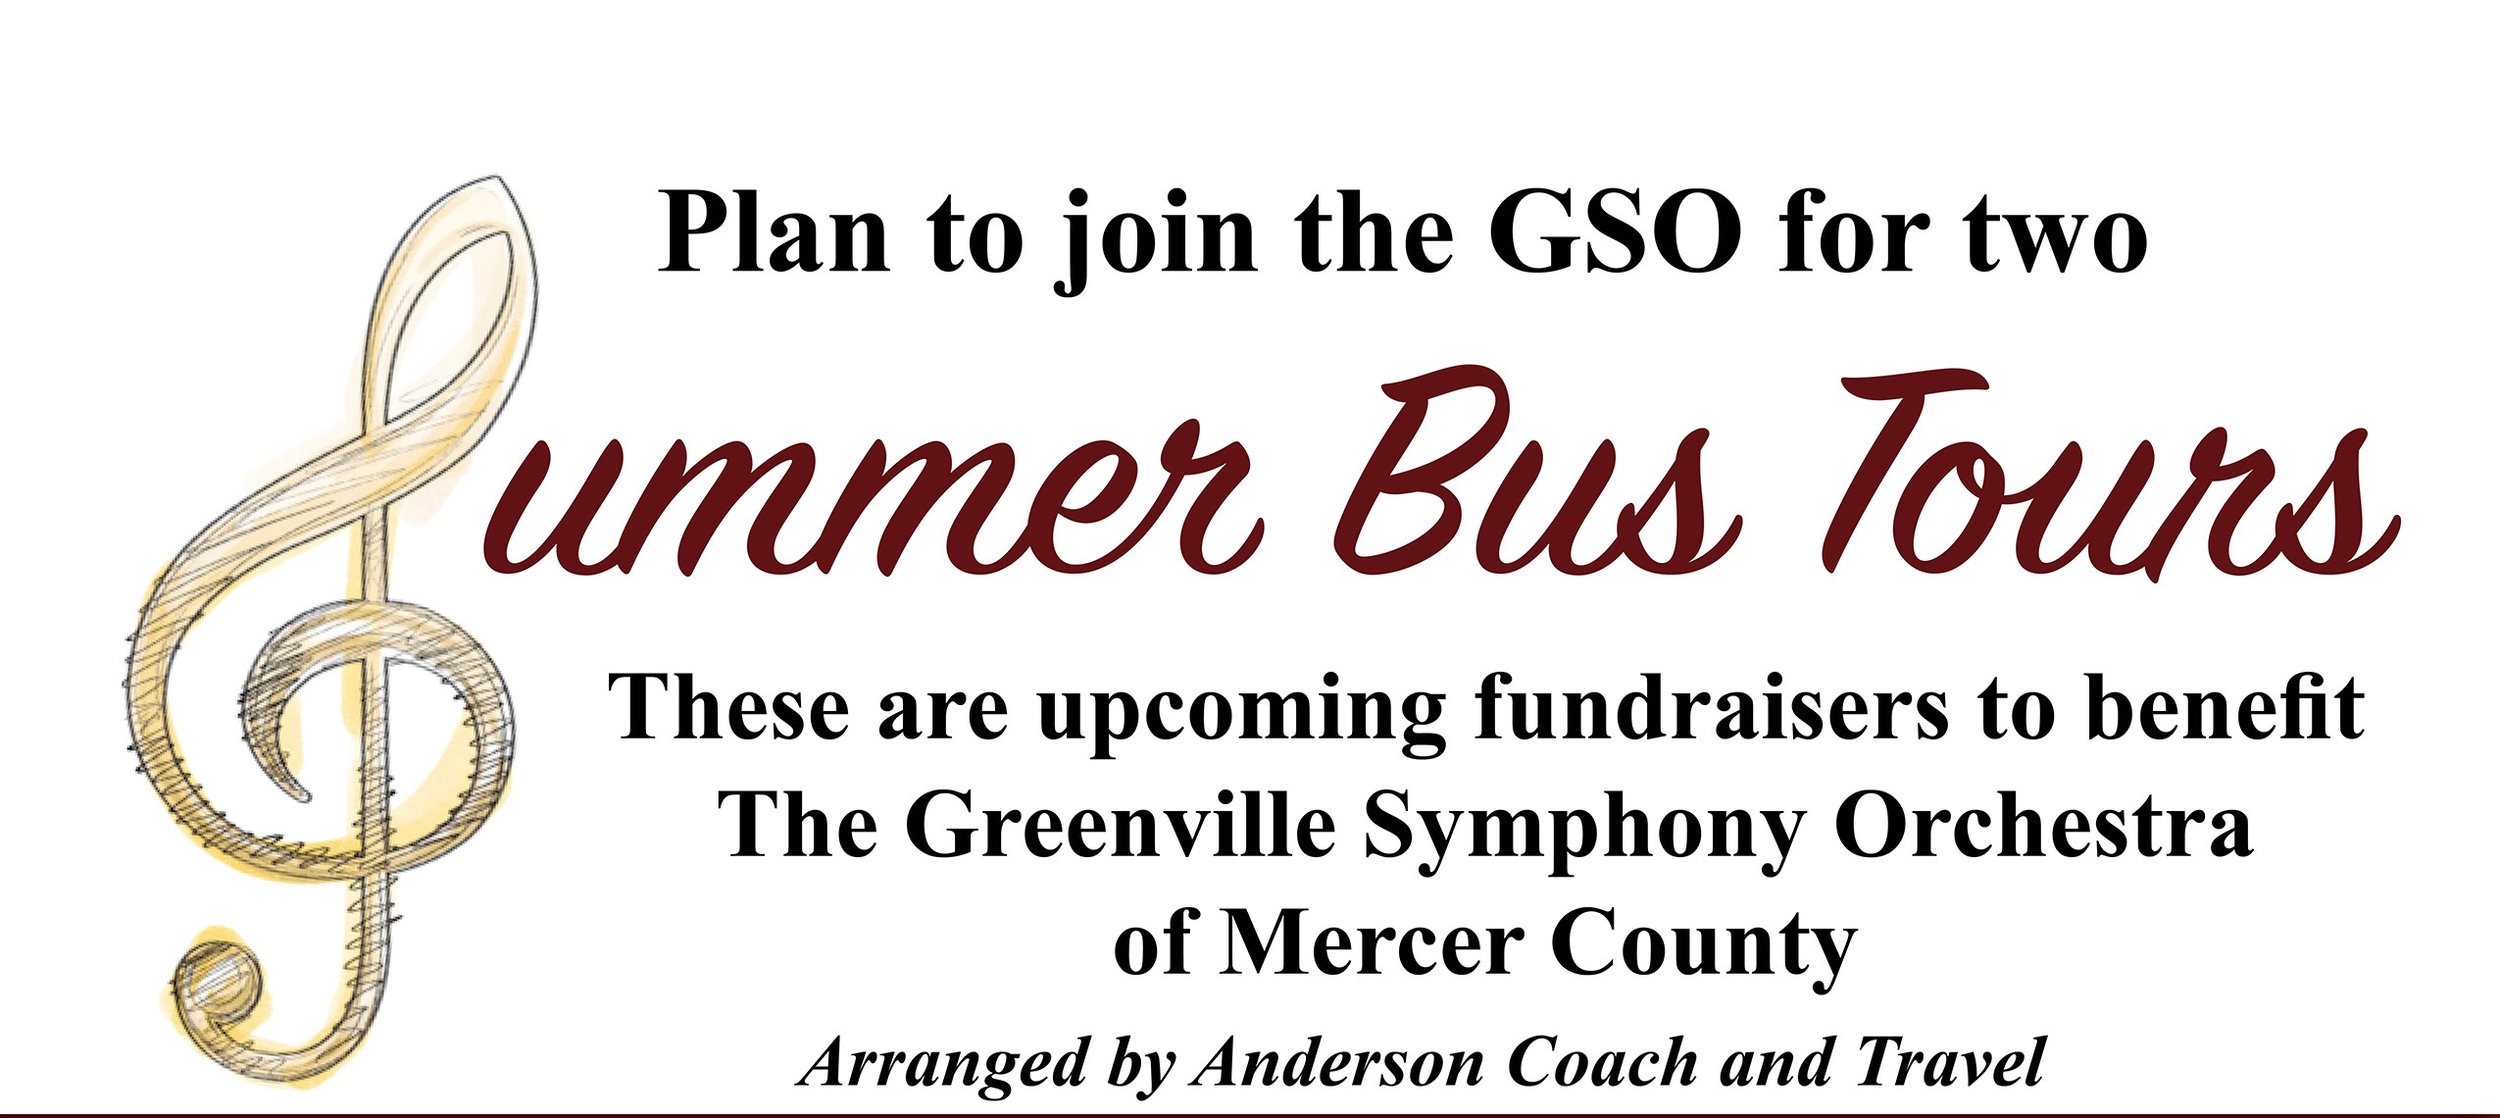 GSO Bus Tours fliertop.jpg